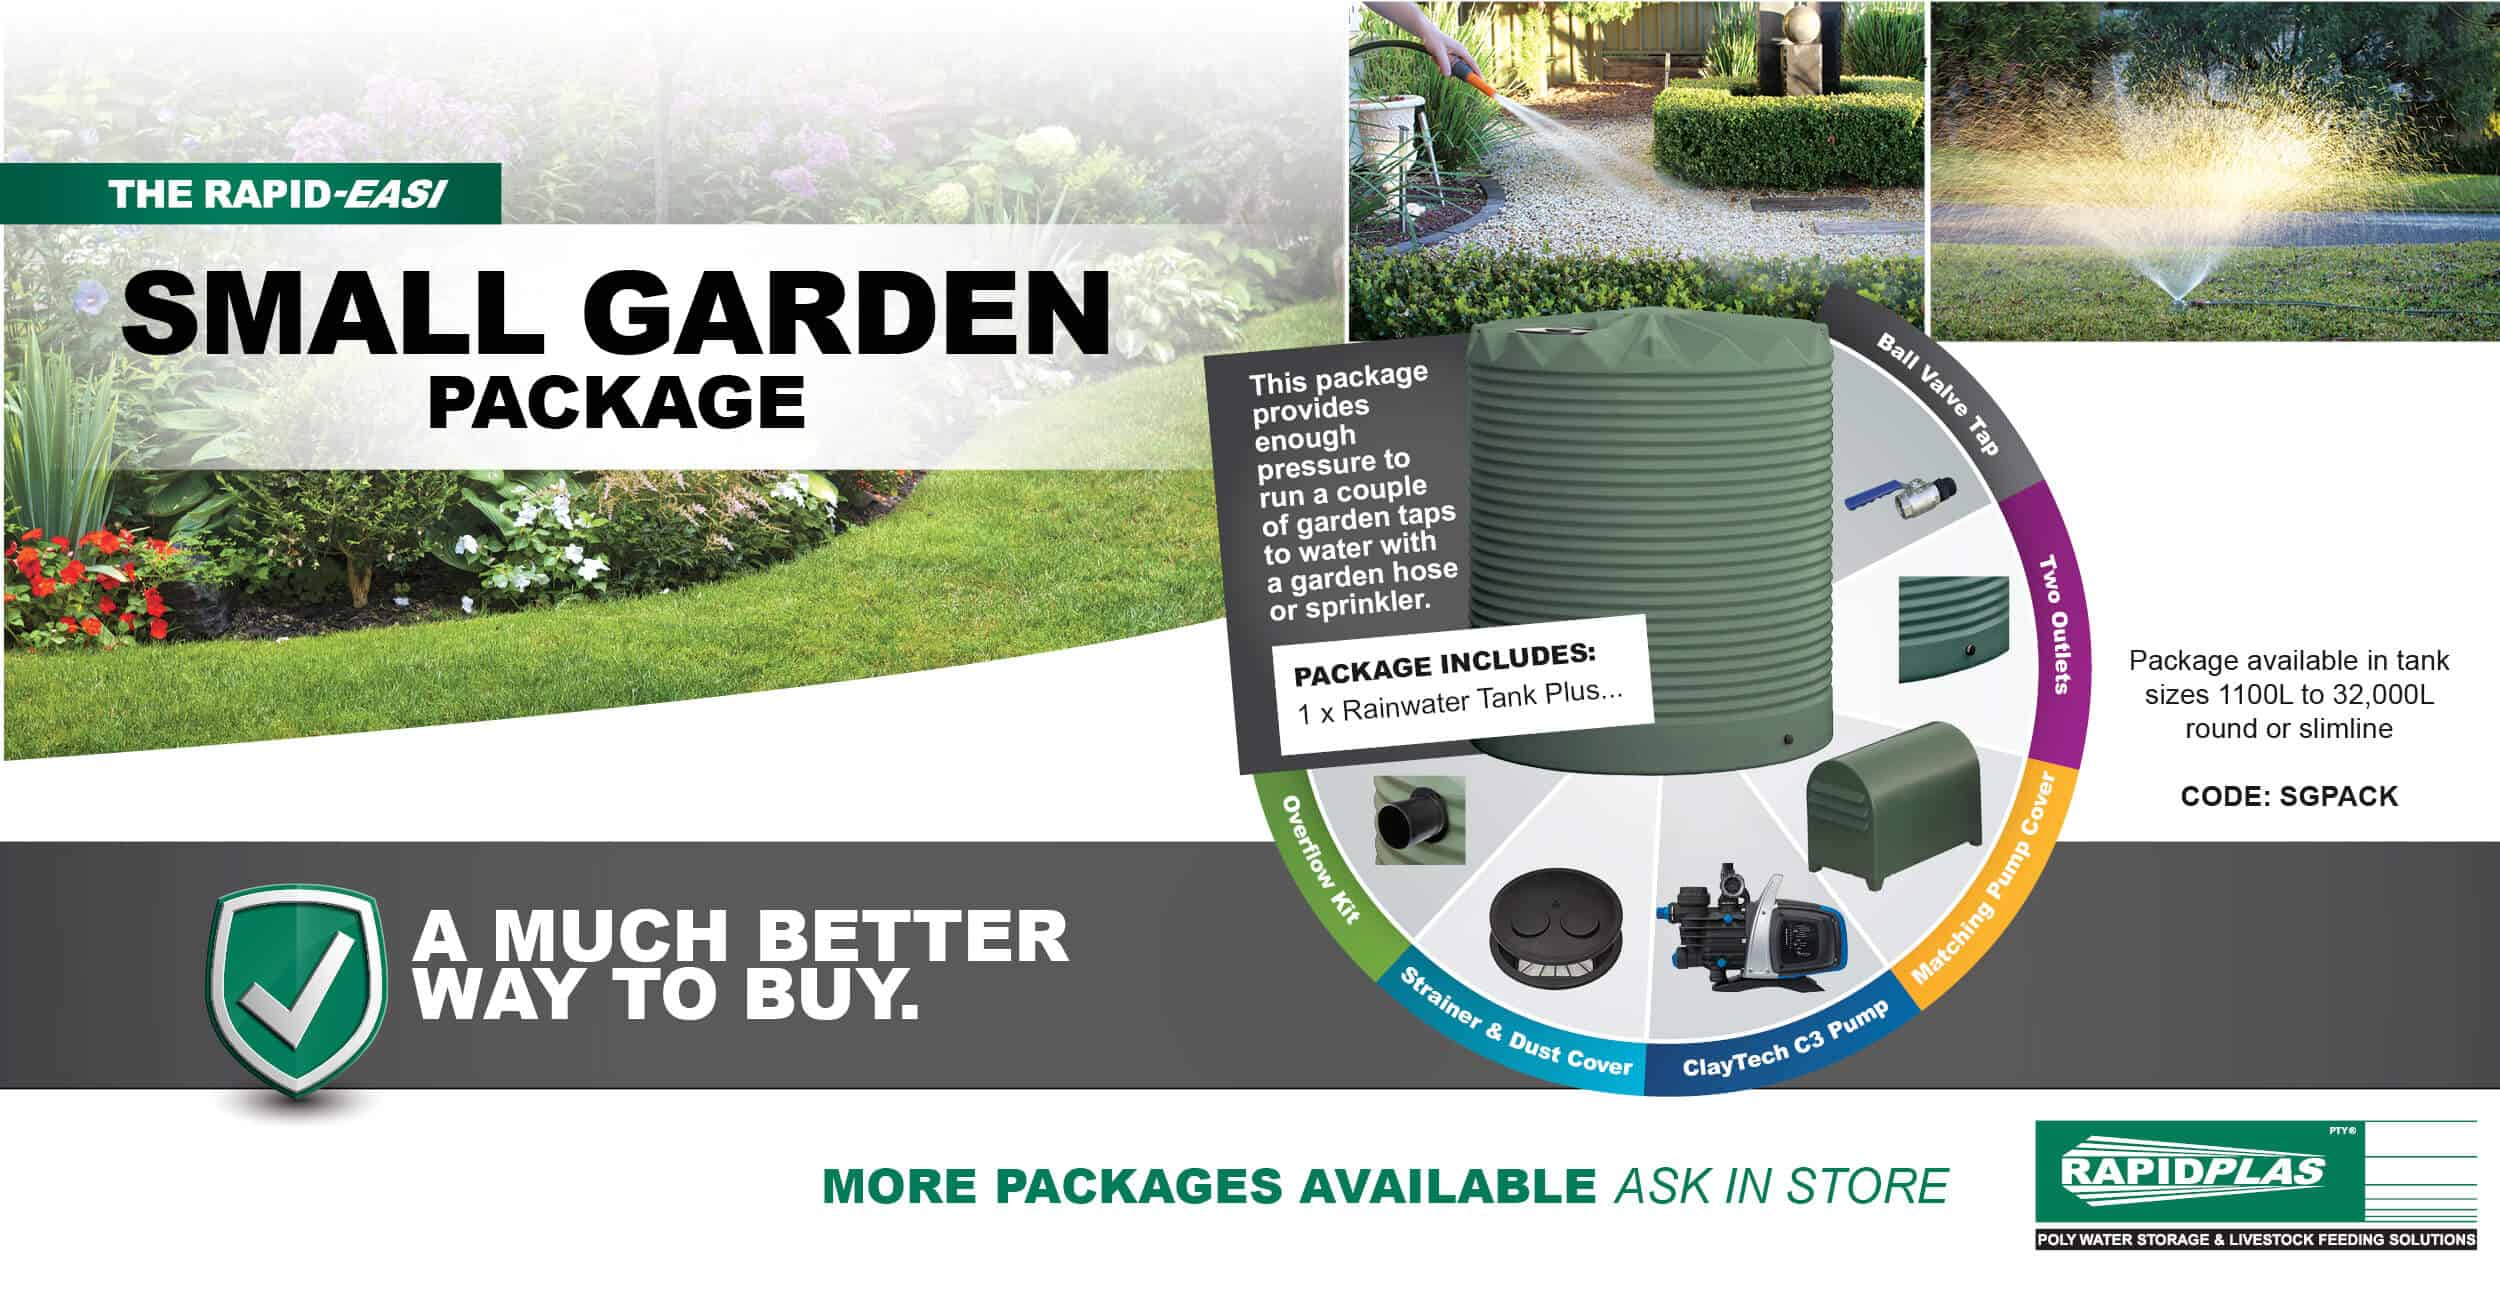 Small Garden Package